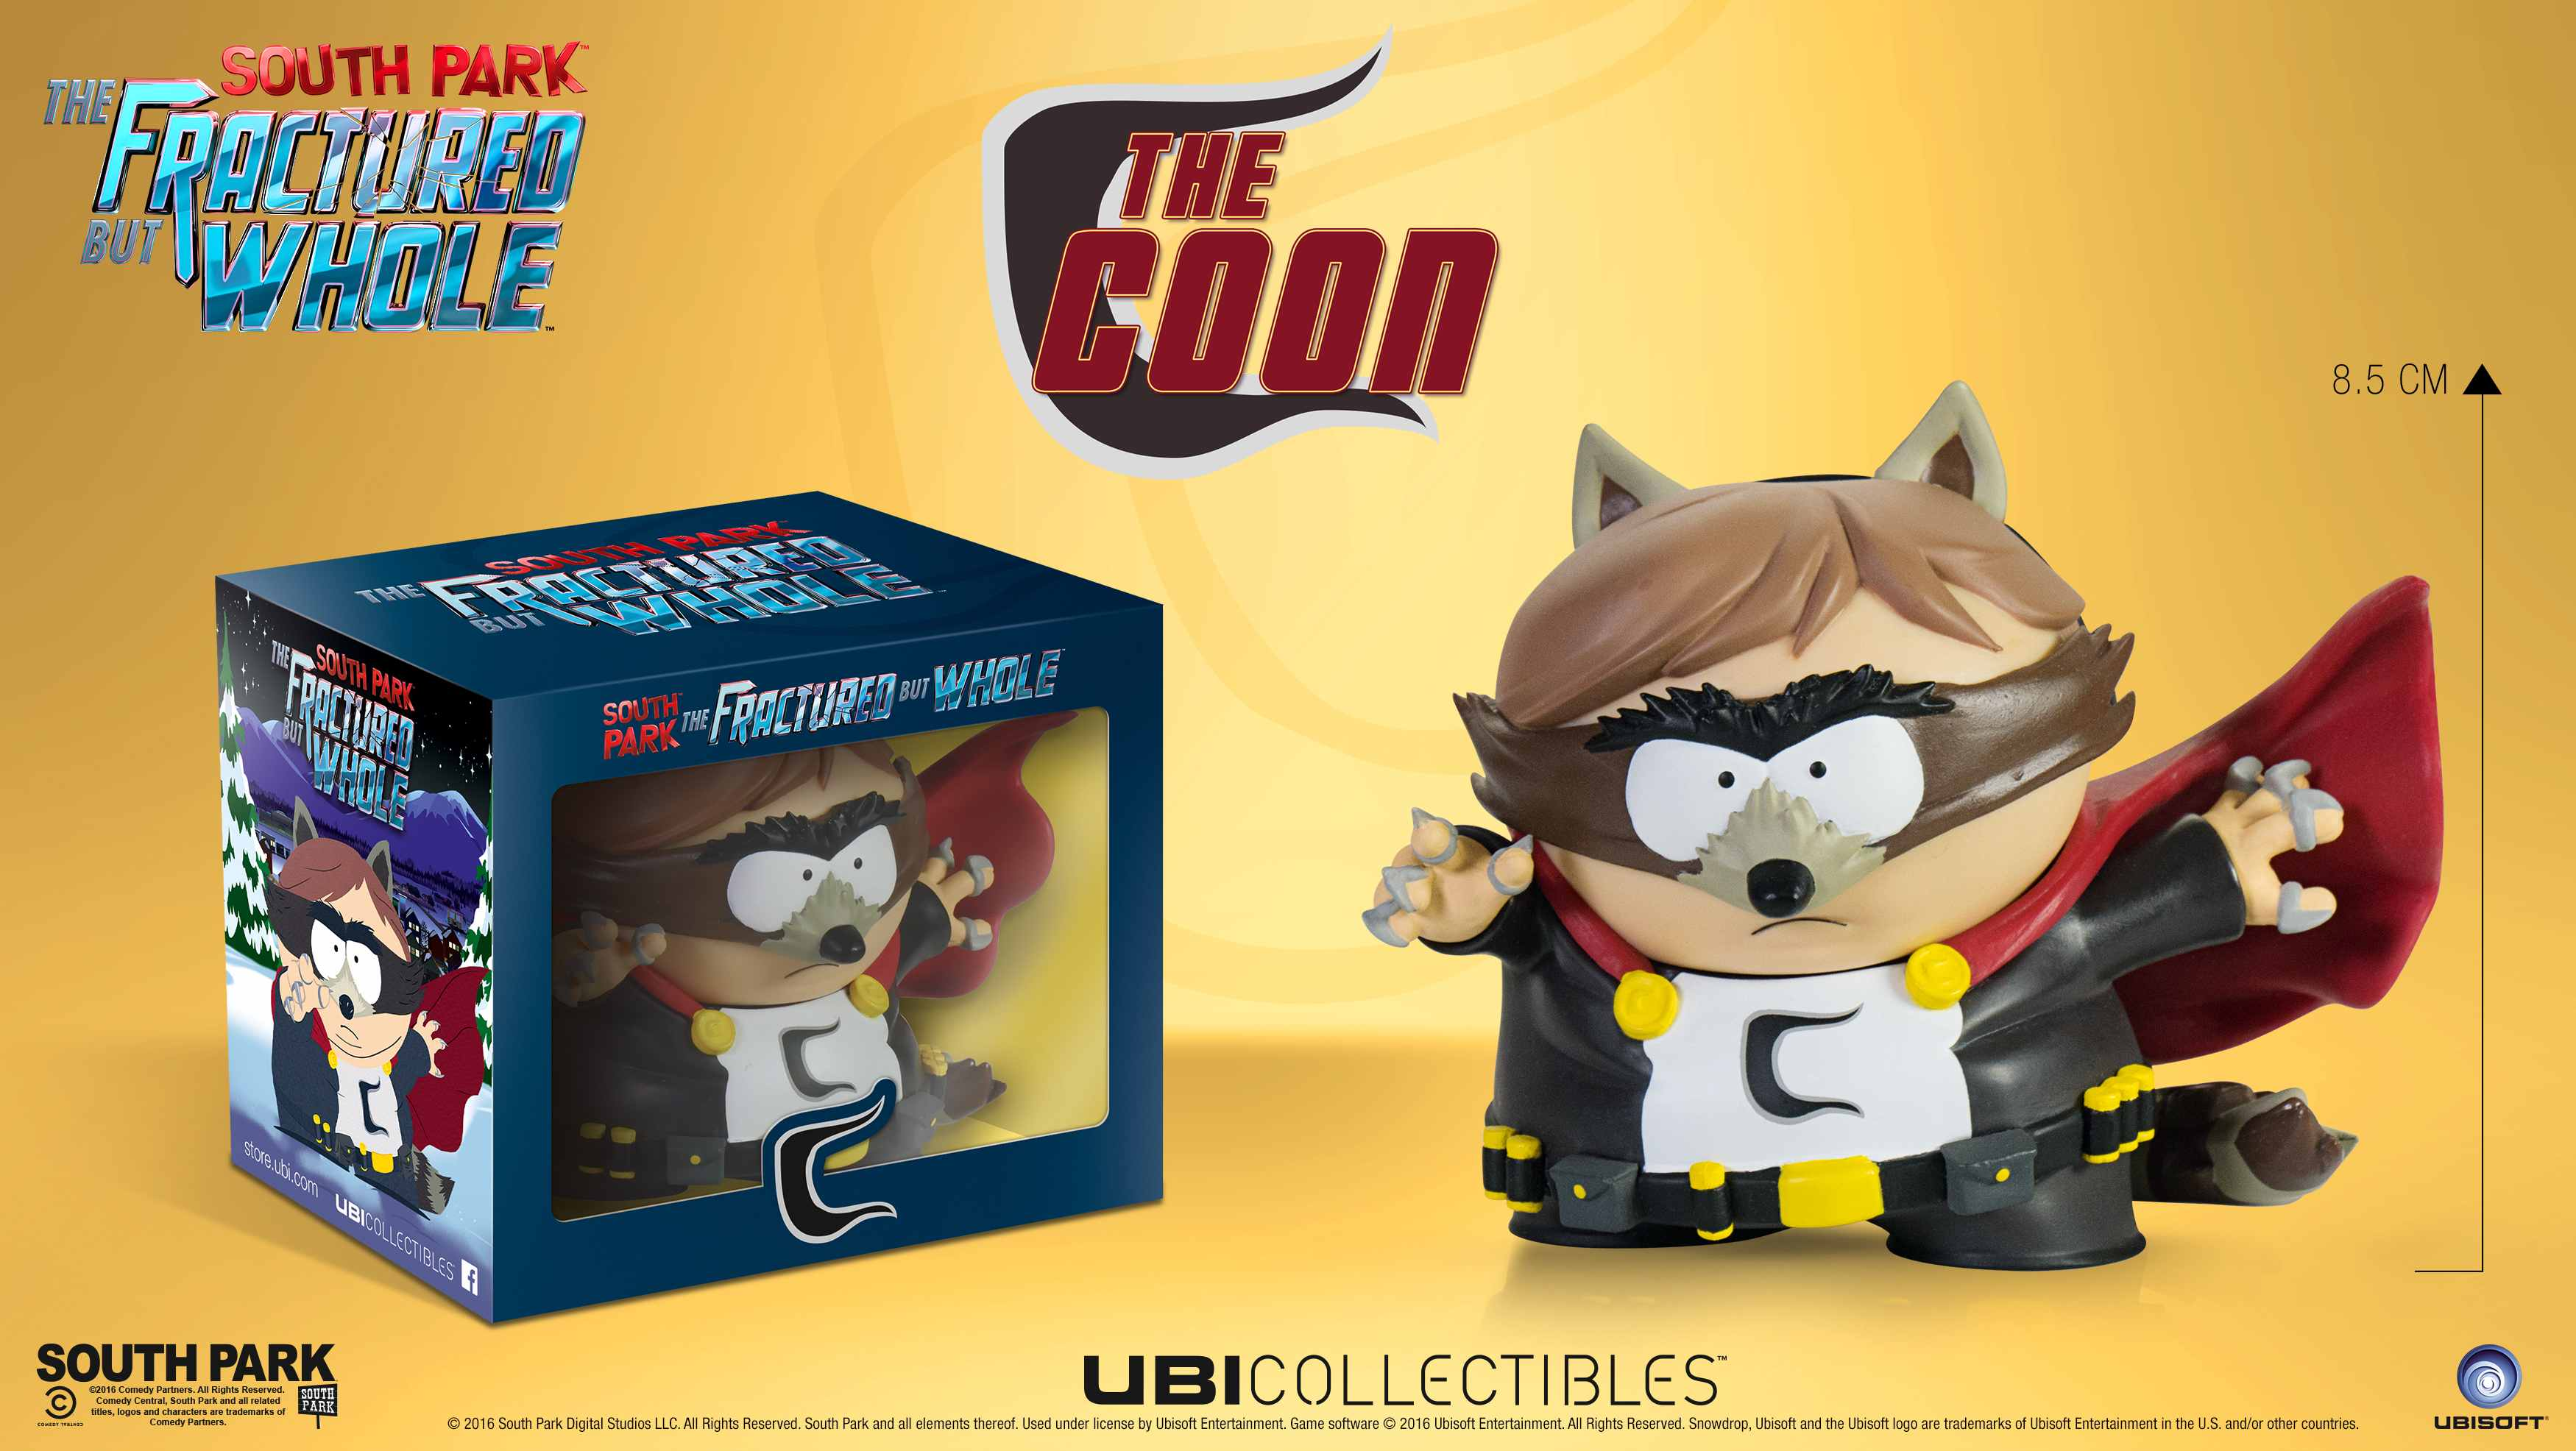 Figurka - South Park: THE COON 7,5cm